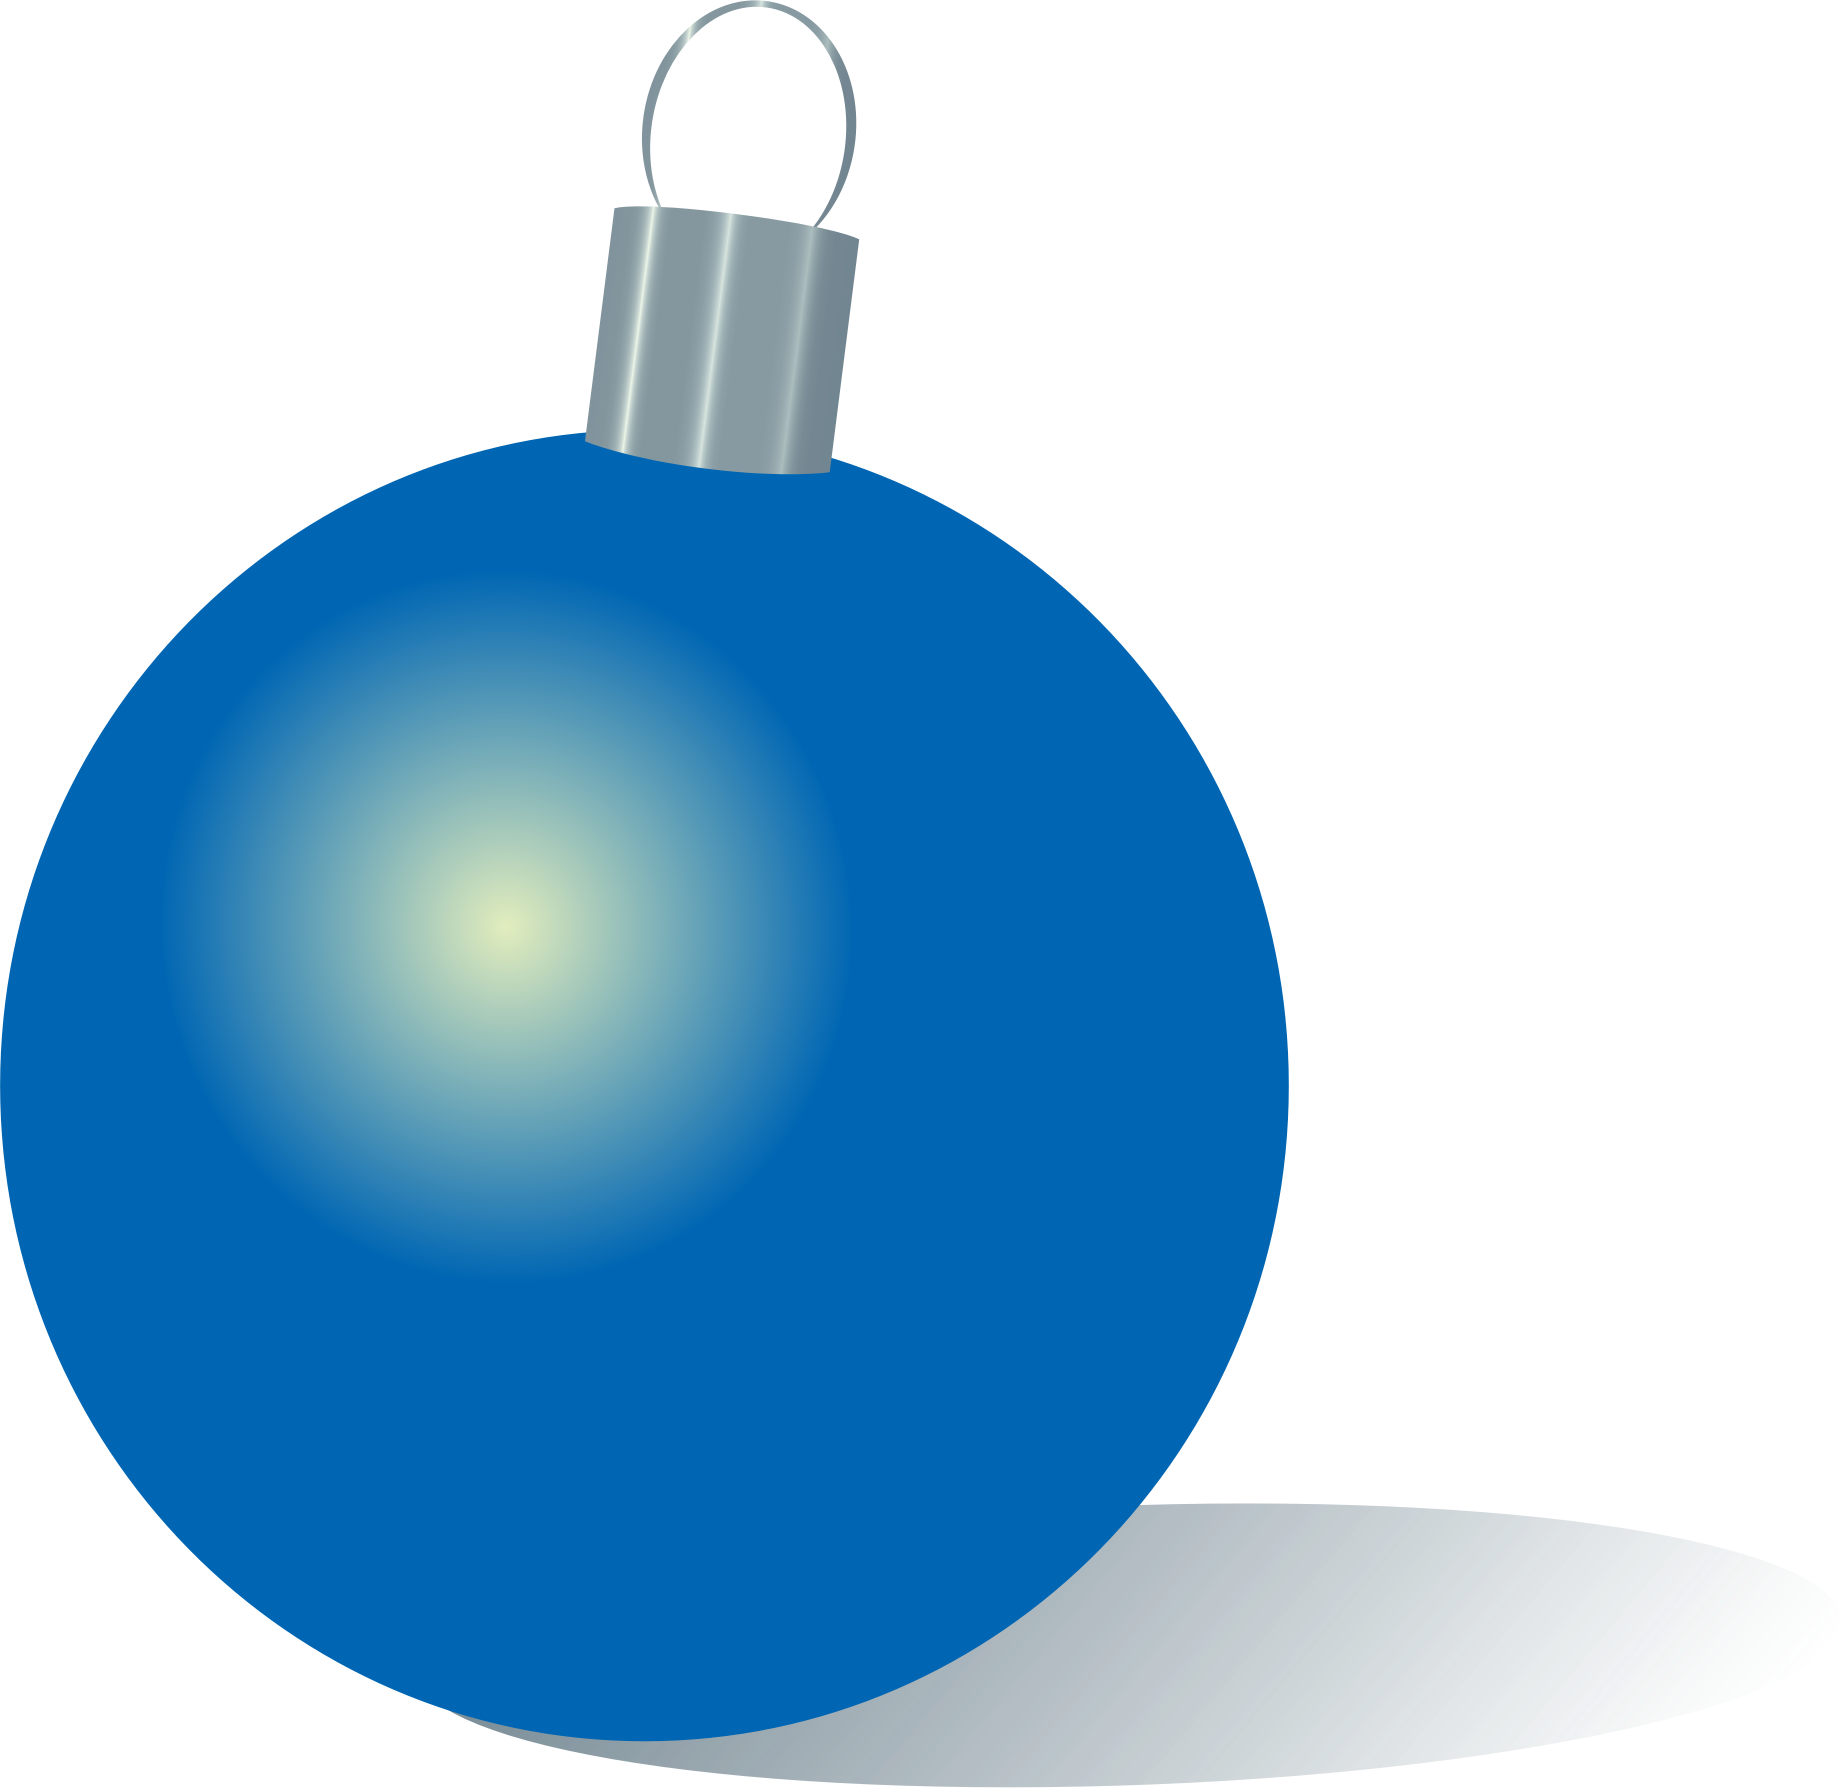 Blue Christmas ornament by Alejunkie